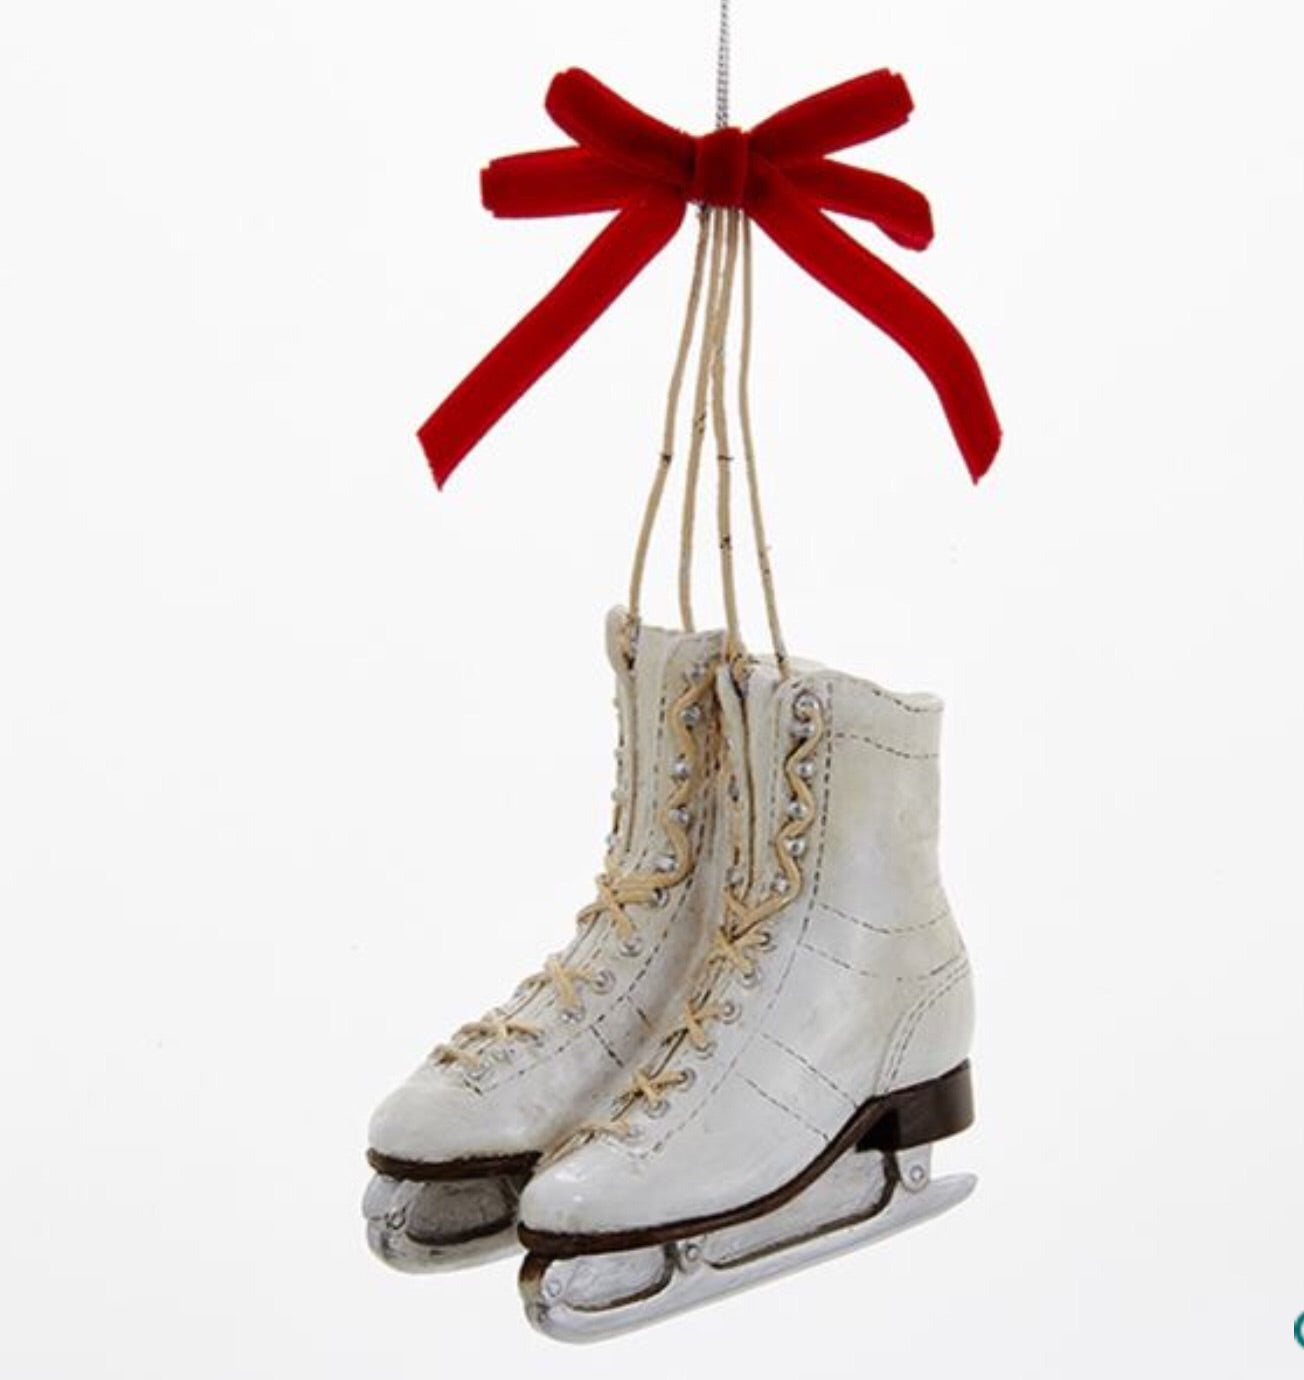 Ice Skates with Red Bow Ornament - C6716 | Jenskates